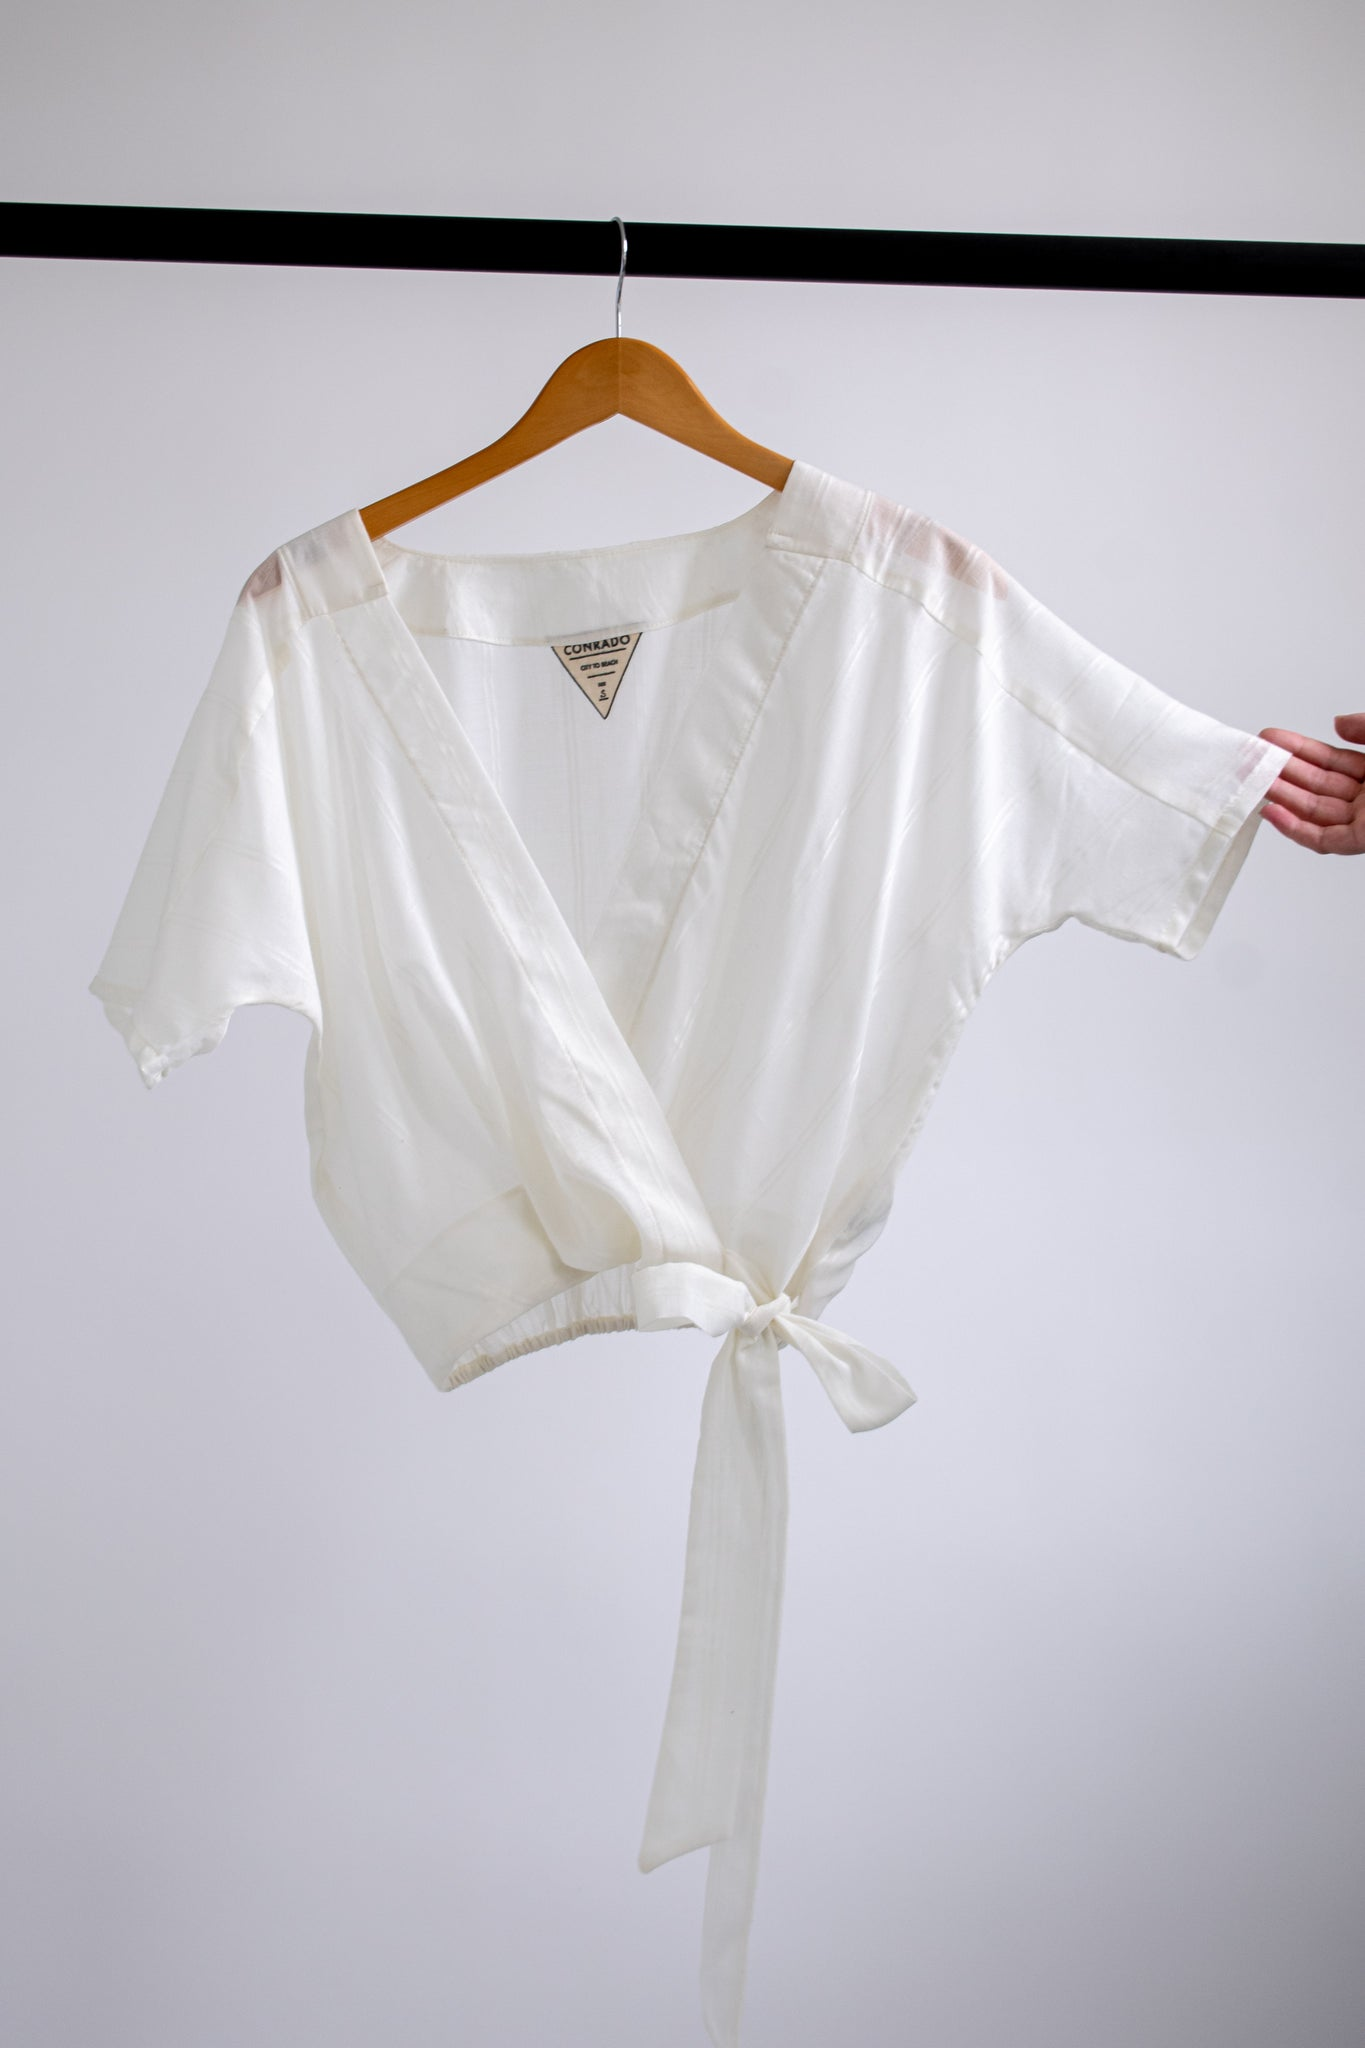 Catherine Surplice Top - White on White Stripe